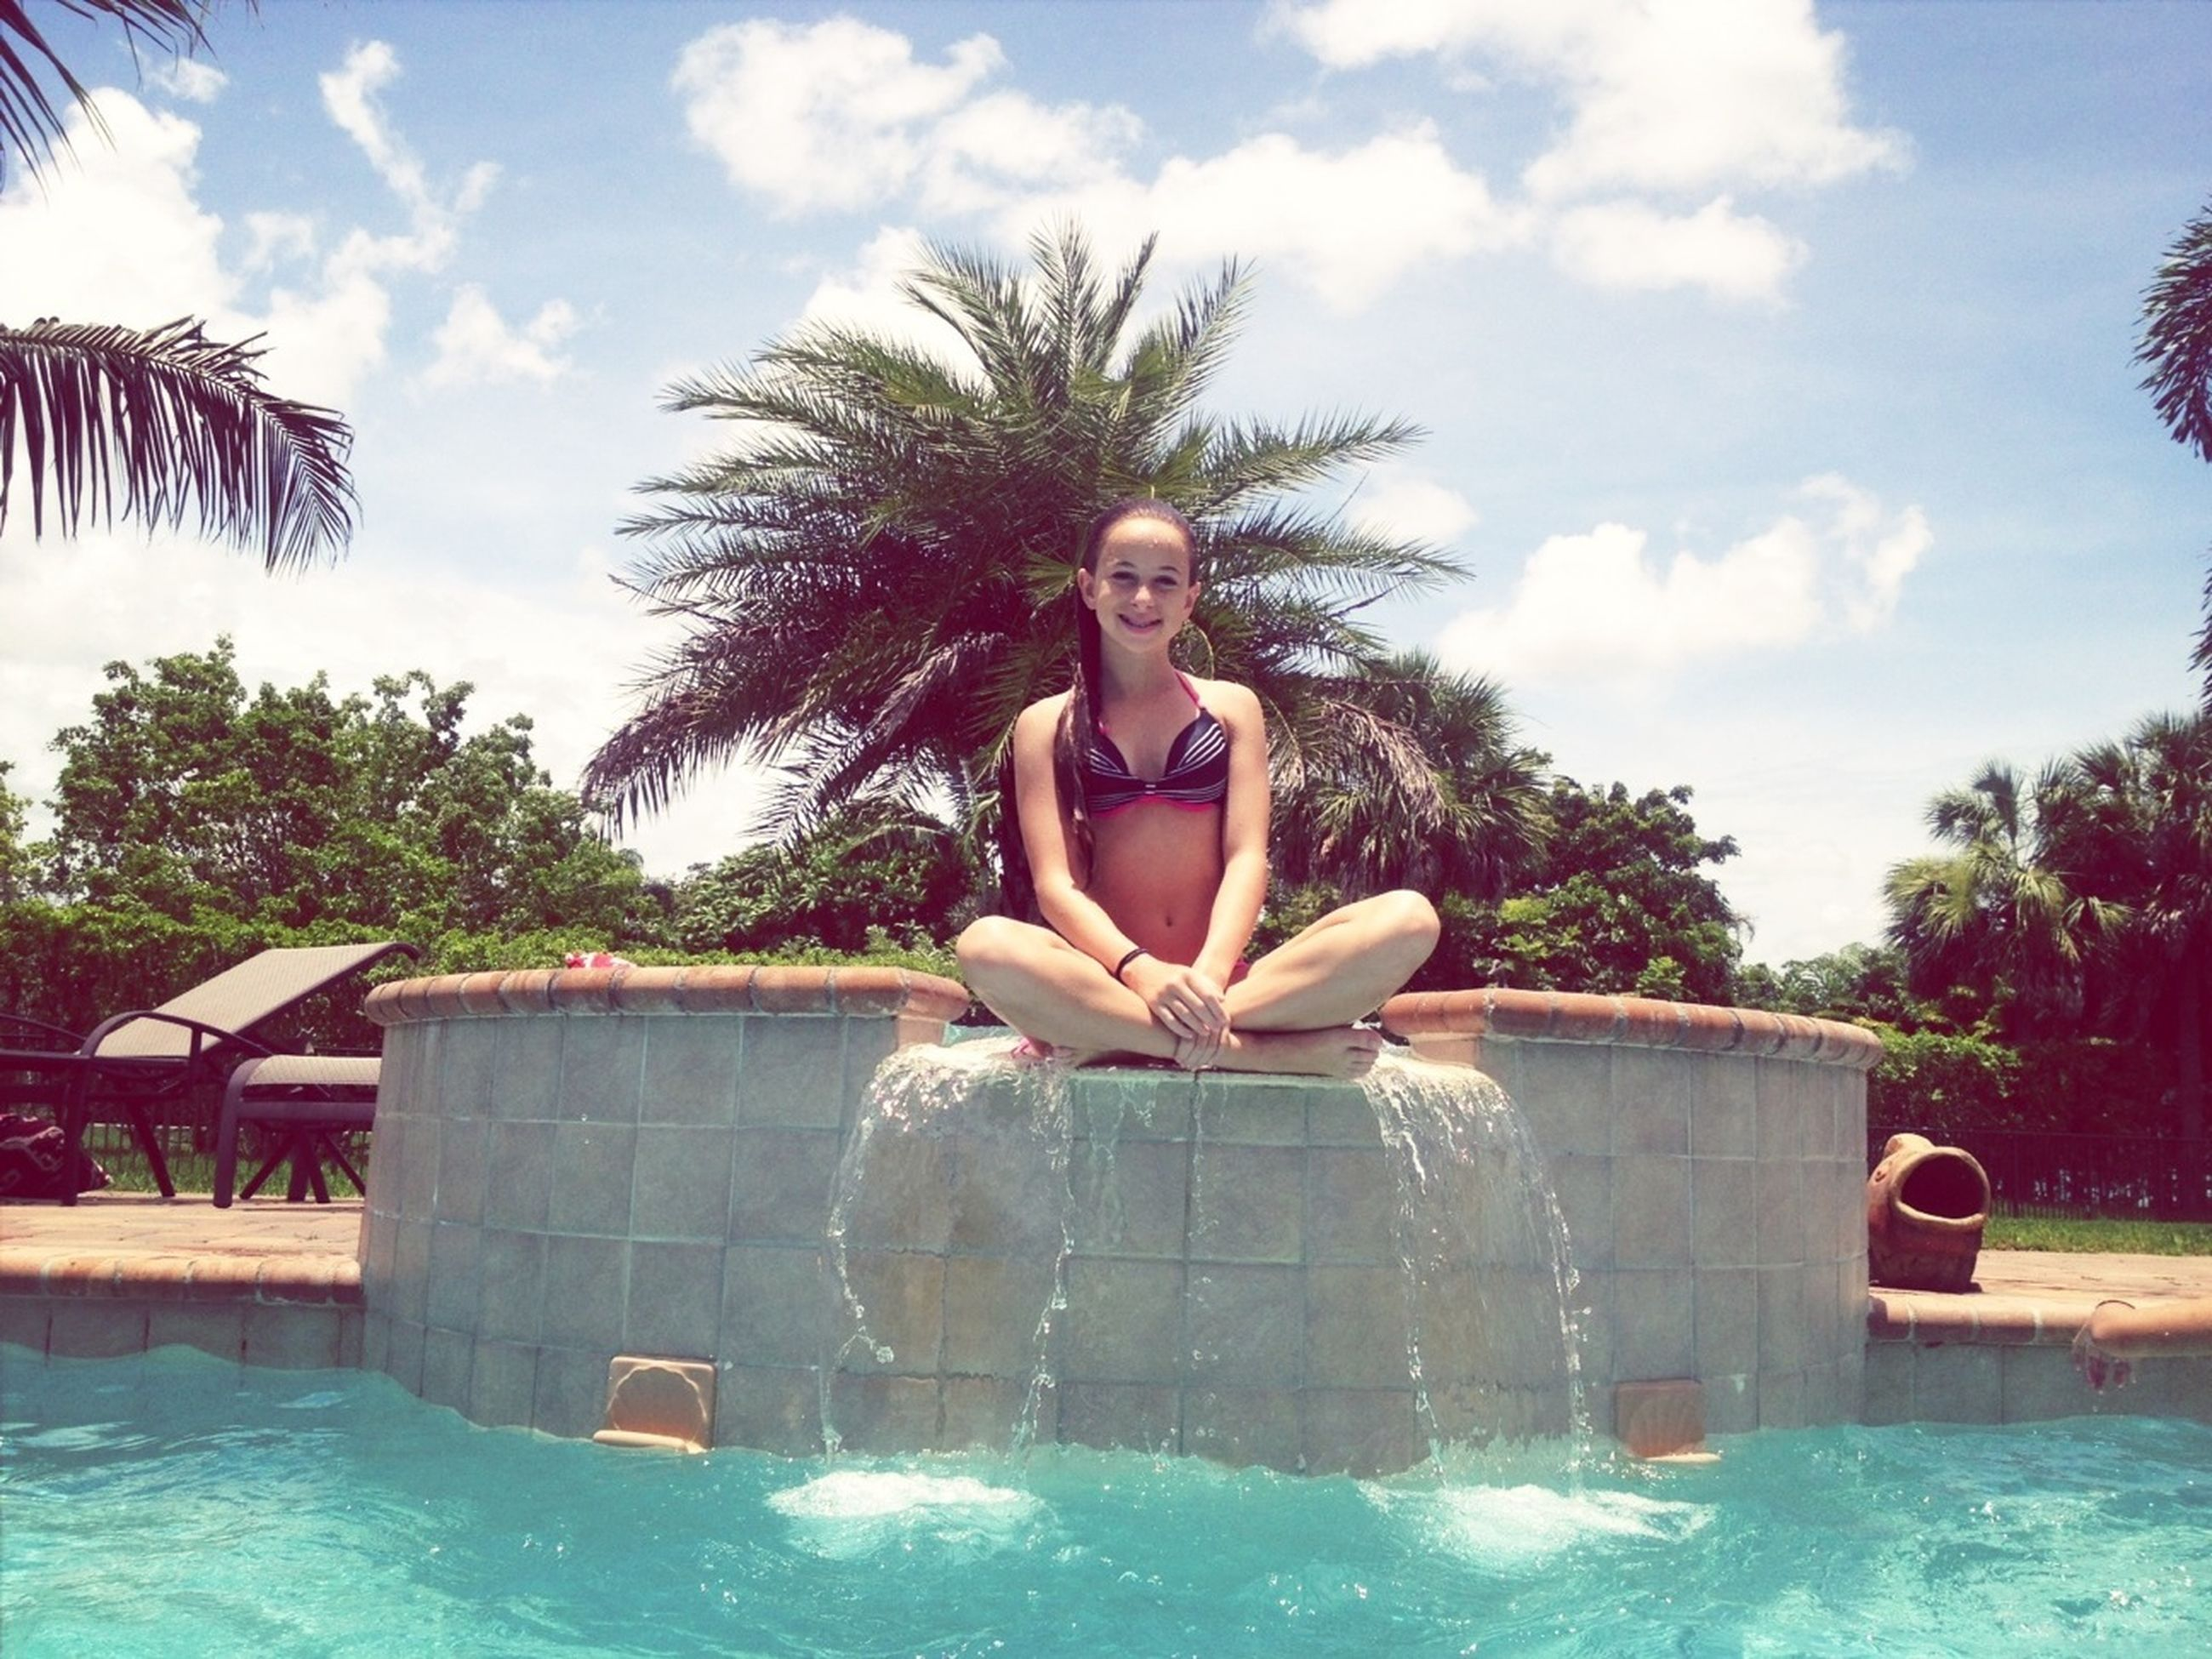 water, swimming pool, sky, tree, palm tree, young adult, person, leisure activity, lifestyles, young women, cloud - sky, waterfront, sea, full length, cloud, bikini, day, sunglasses